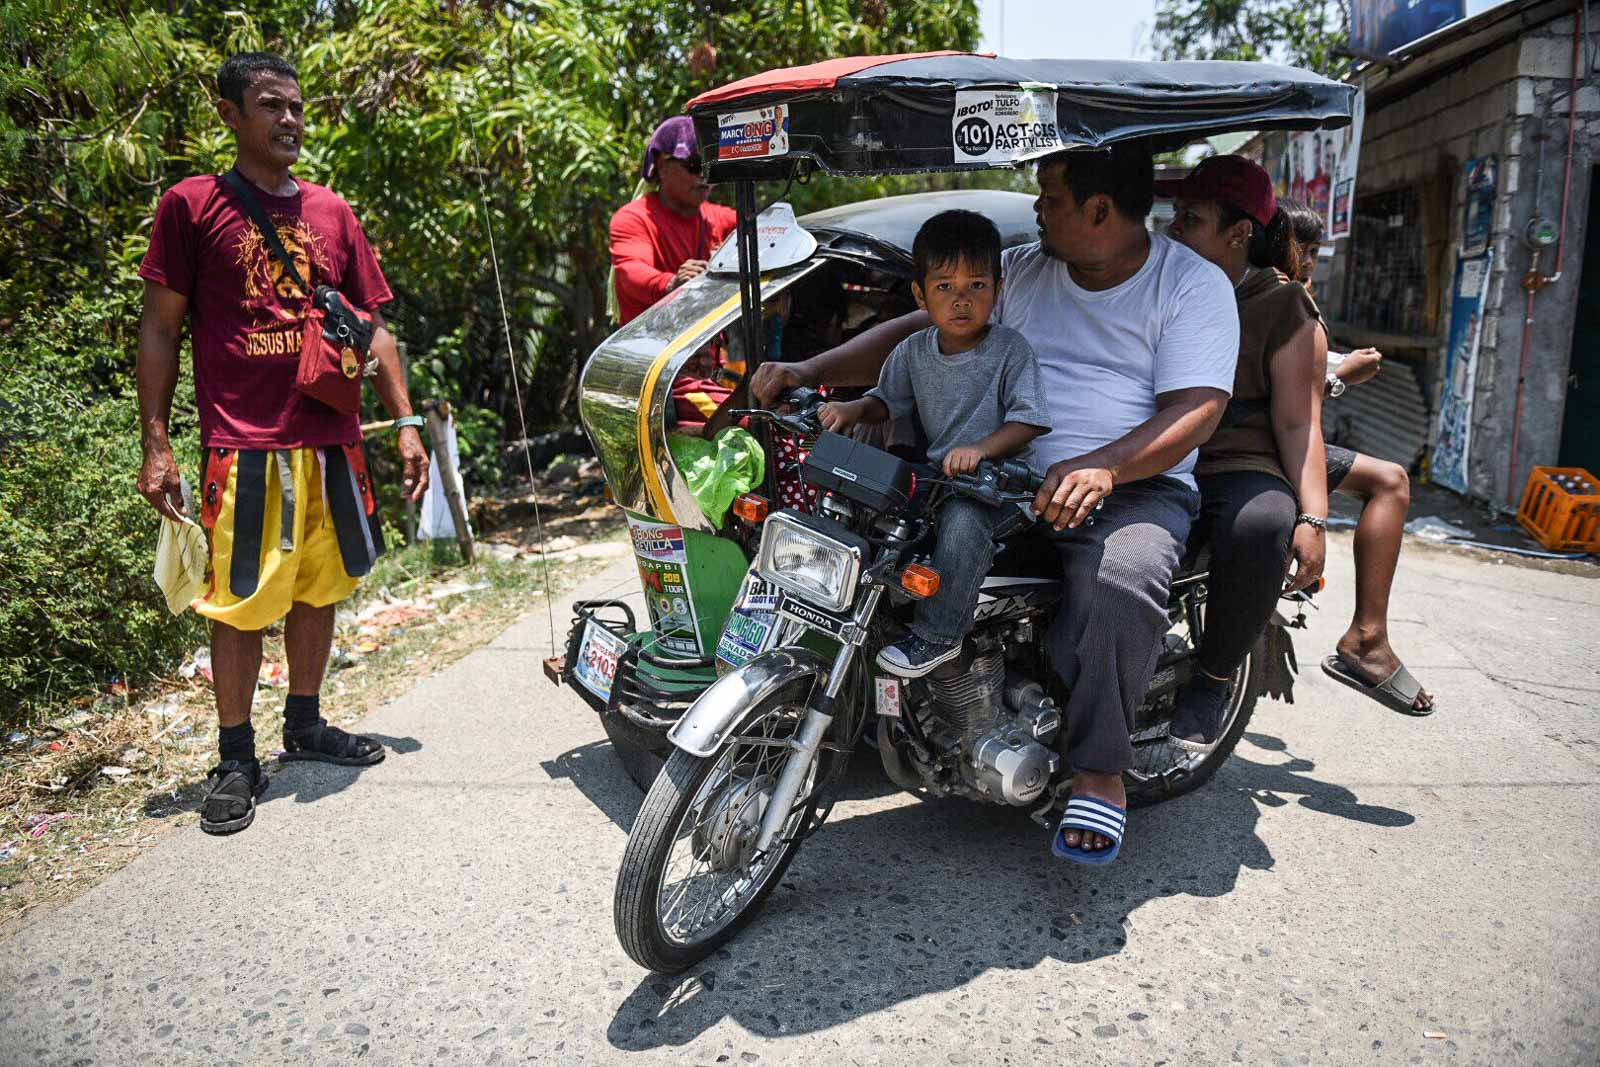 GOING HOME. When all is said and done, the tricycle-driver Marcelino takes his family out for lunch after his crucifixion.